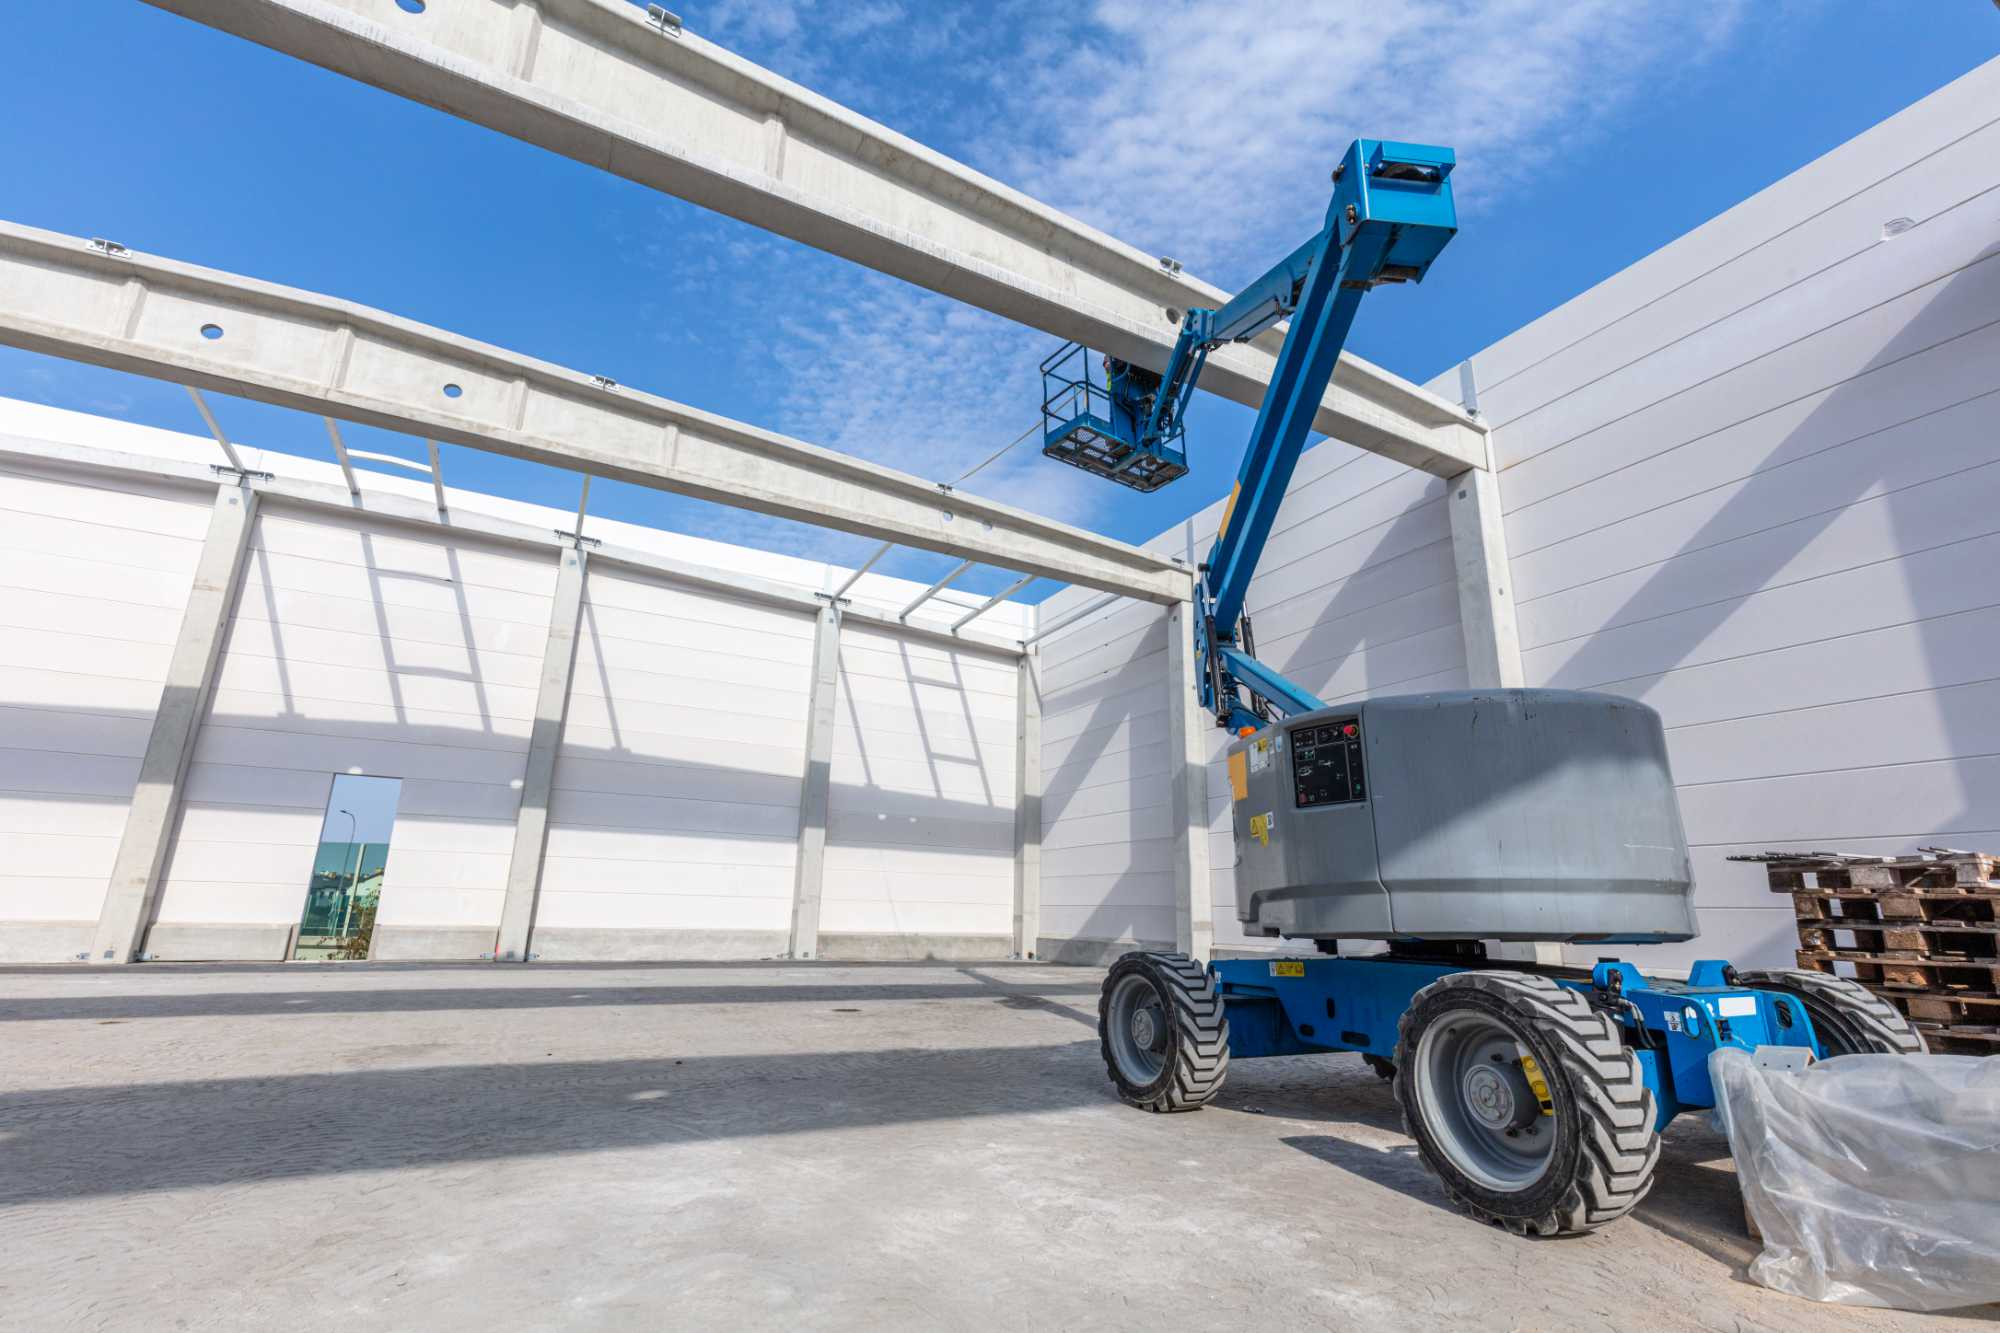 warehouse-construction-site-with-industrial-vehicl-9JMBUJE.jpg